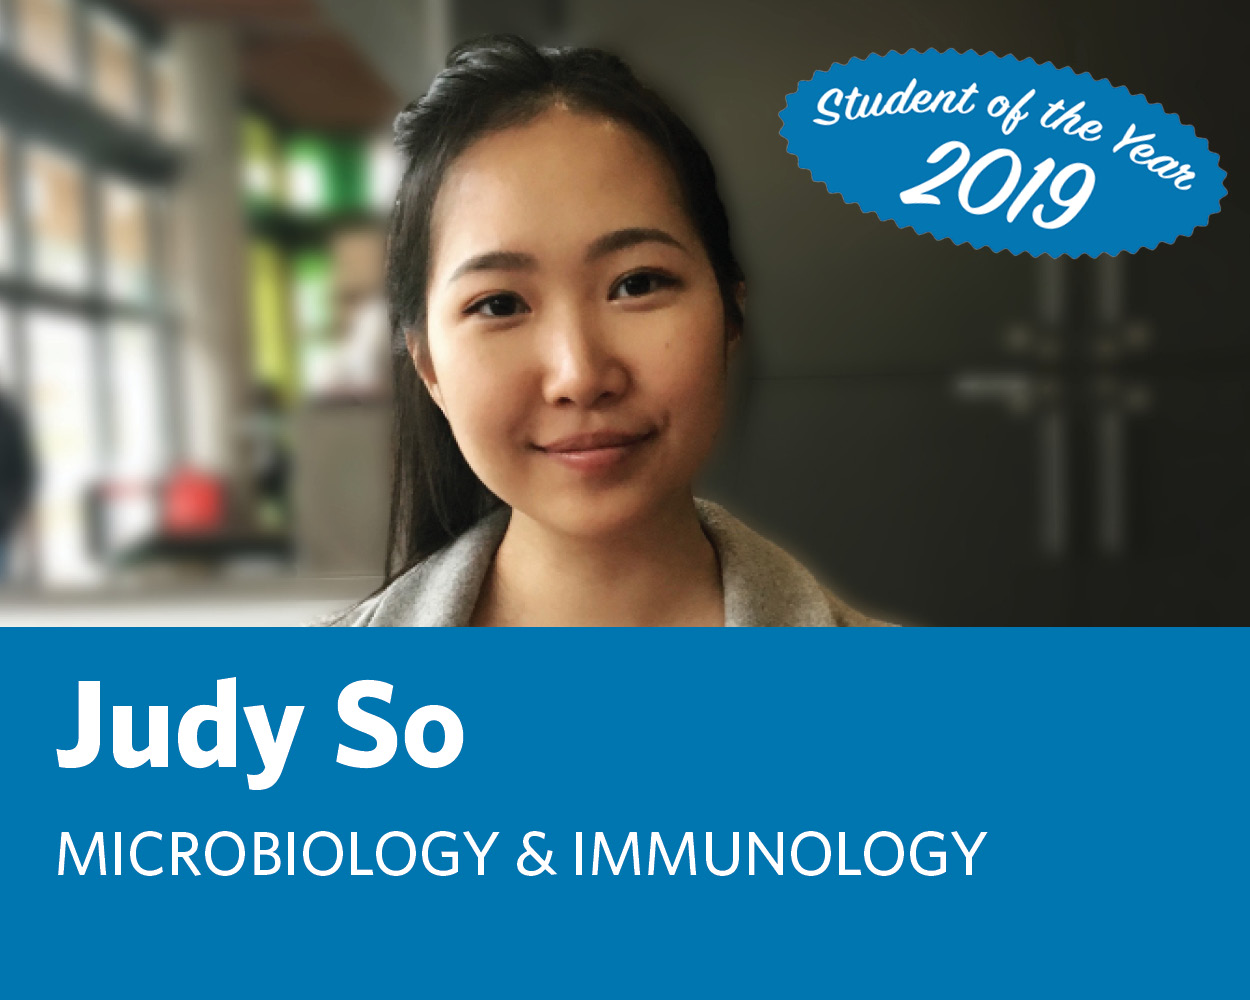 Judy So: Microbiology & Immunology